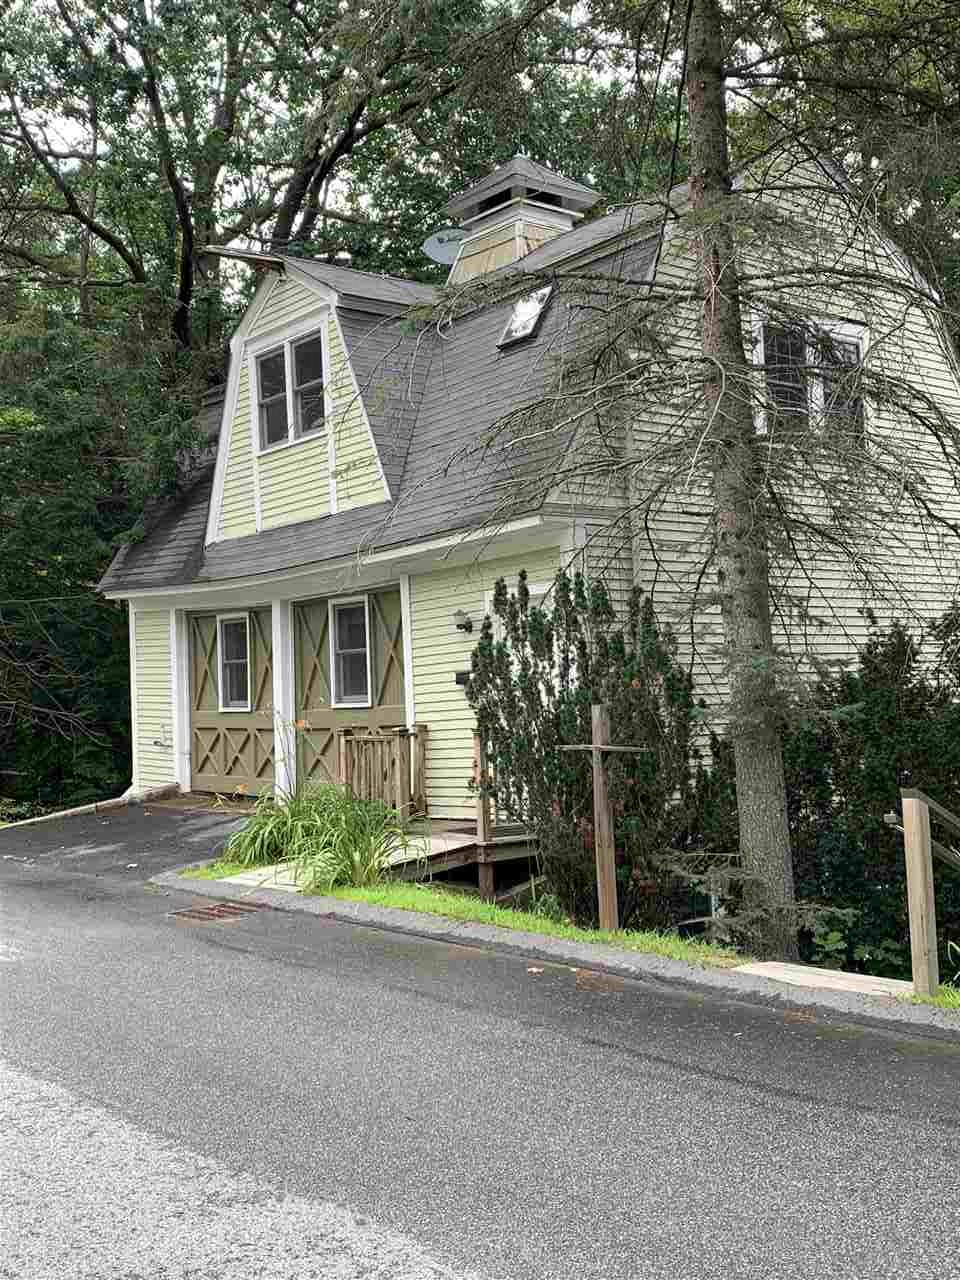 MLS 4770726: 6 Weeks Street, Plymouth NH